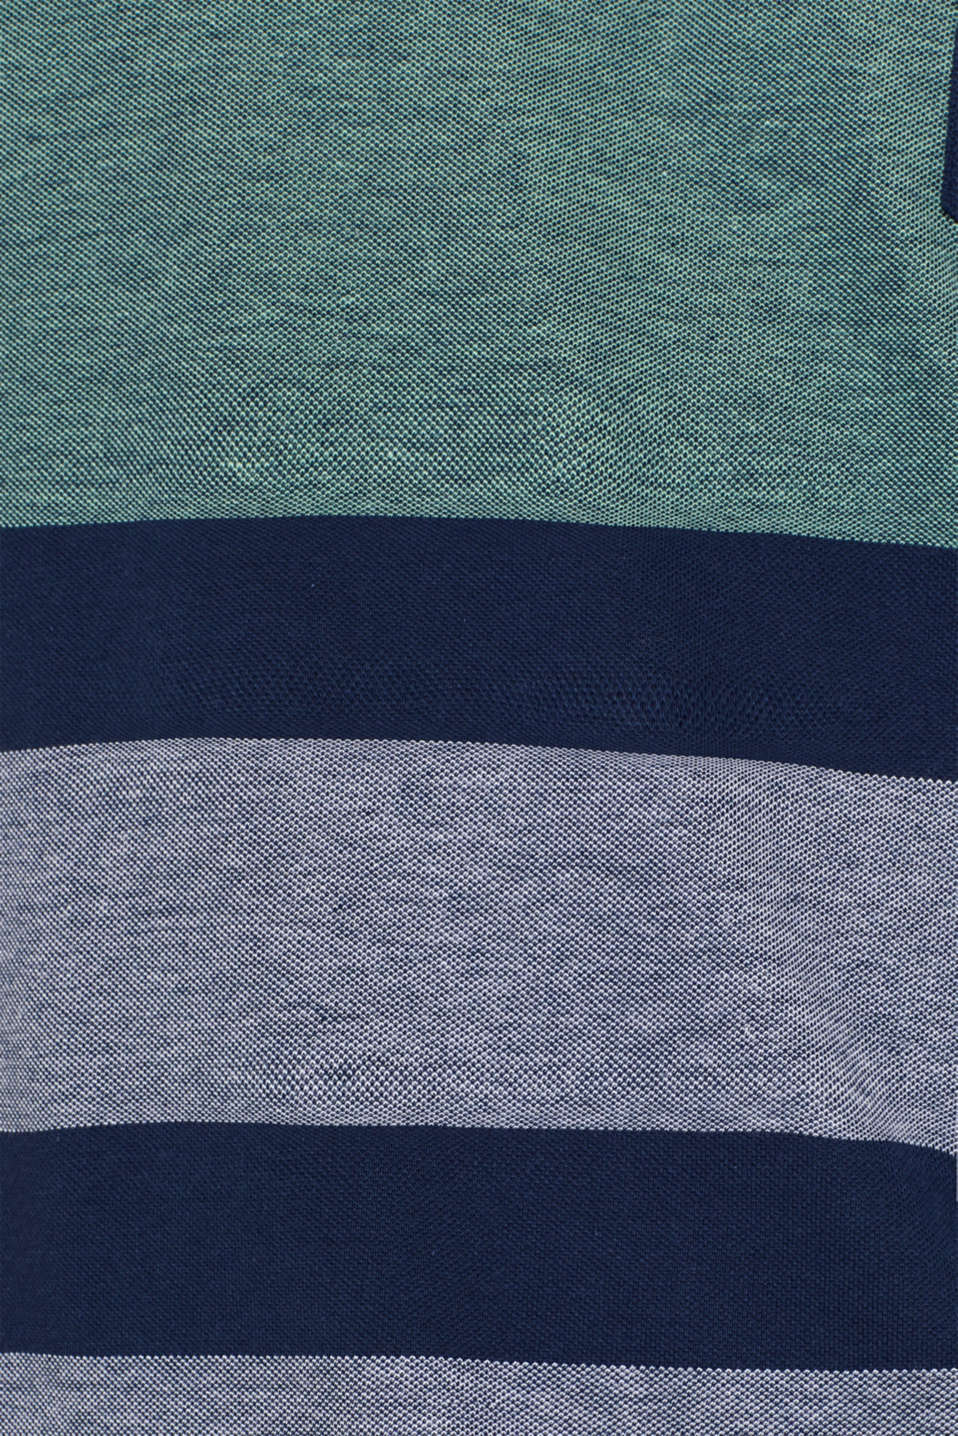 Piqué T-shirt in 100% cotton, NAVY, detail image number 5